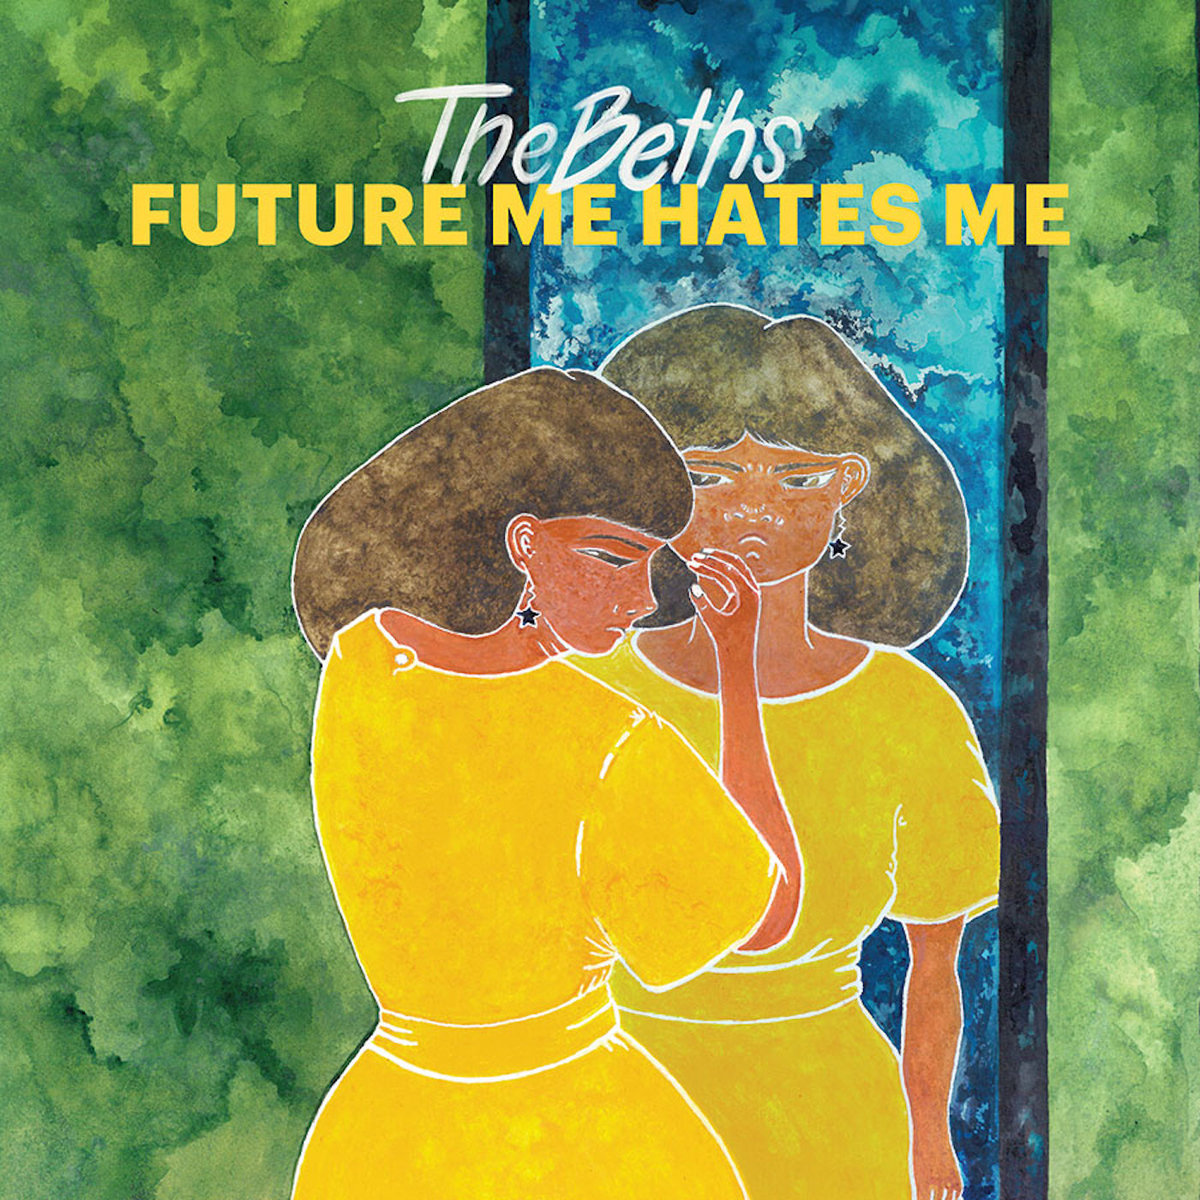 The Beths debut album cover